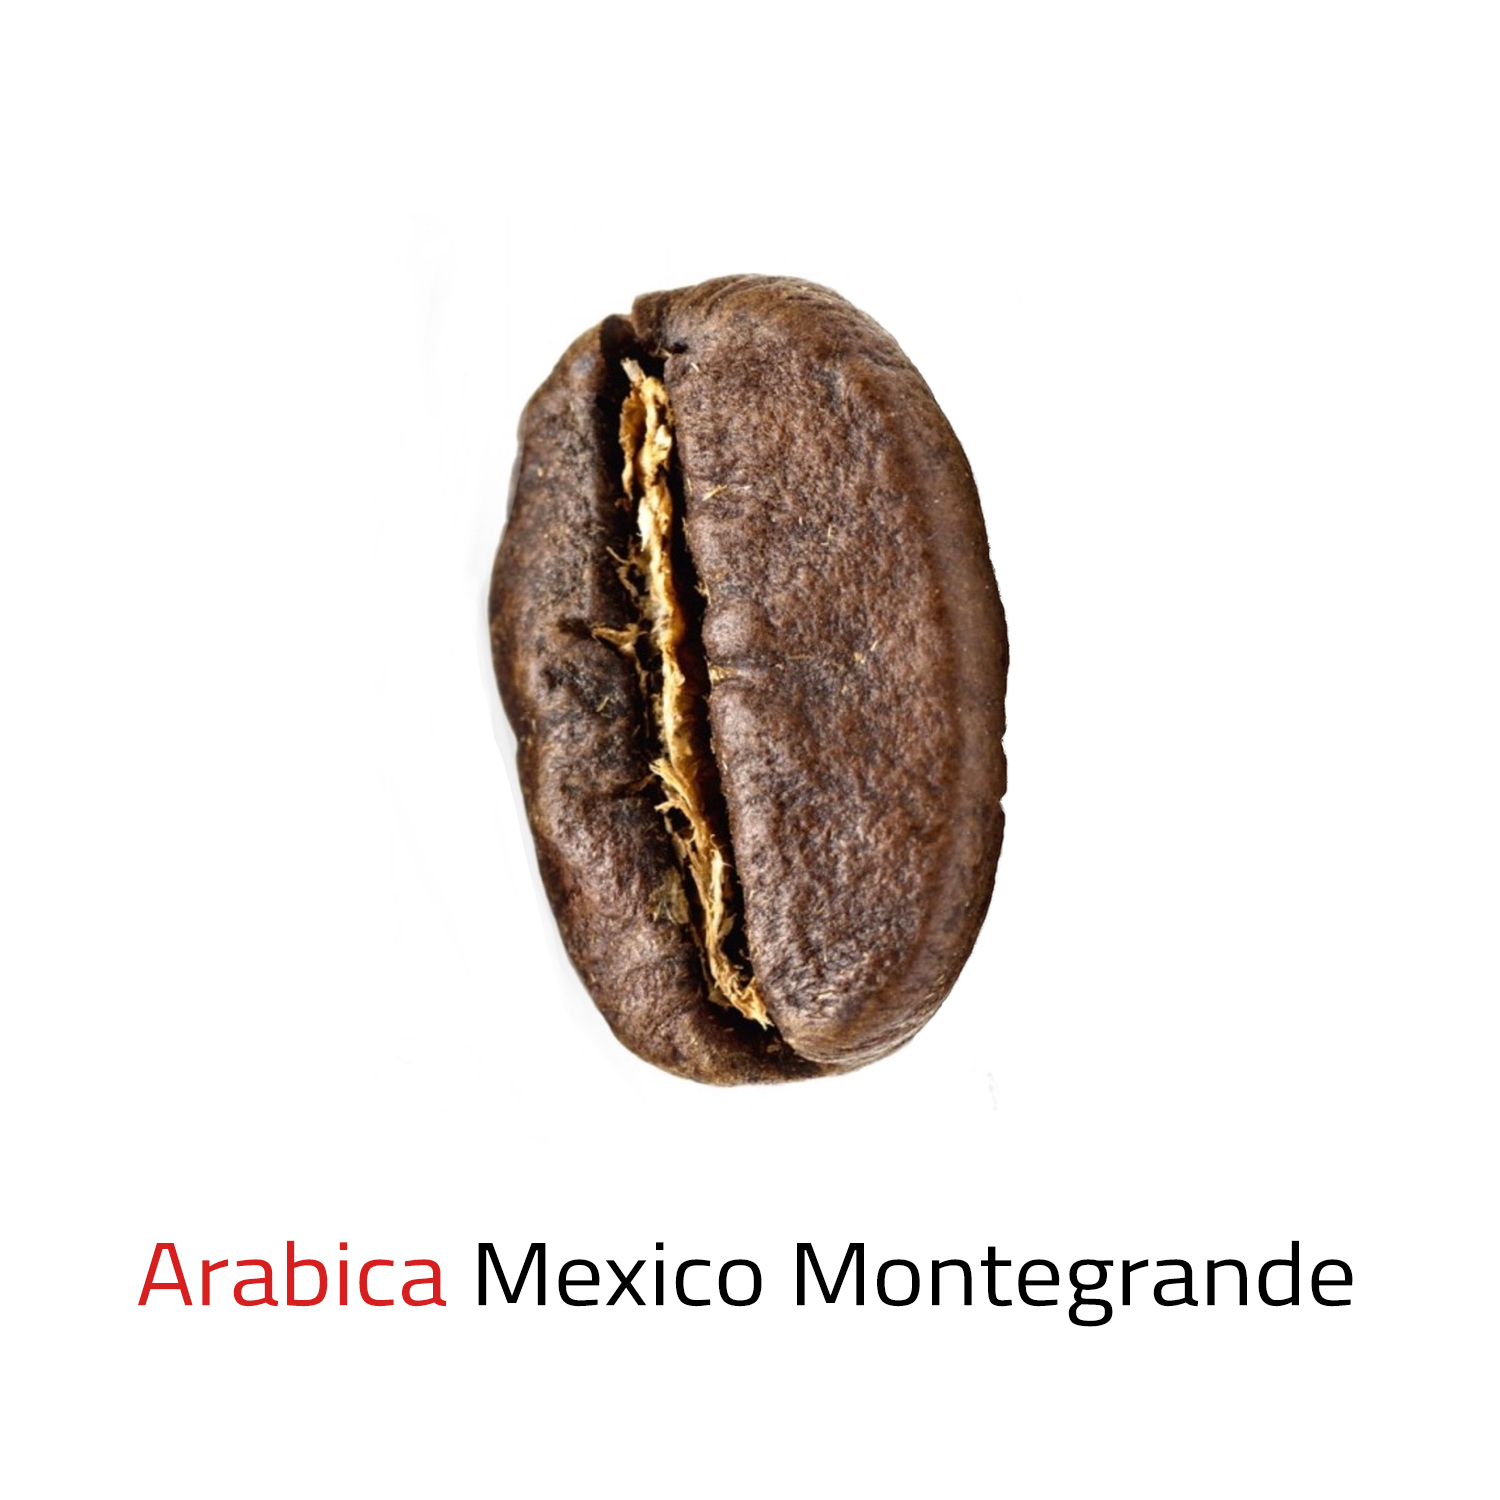 Arabica Mexico Montegrande